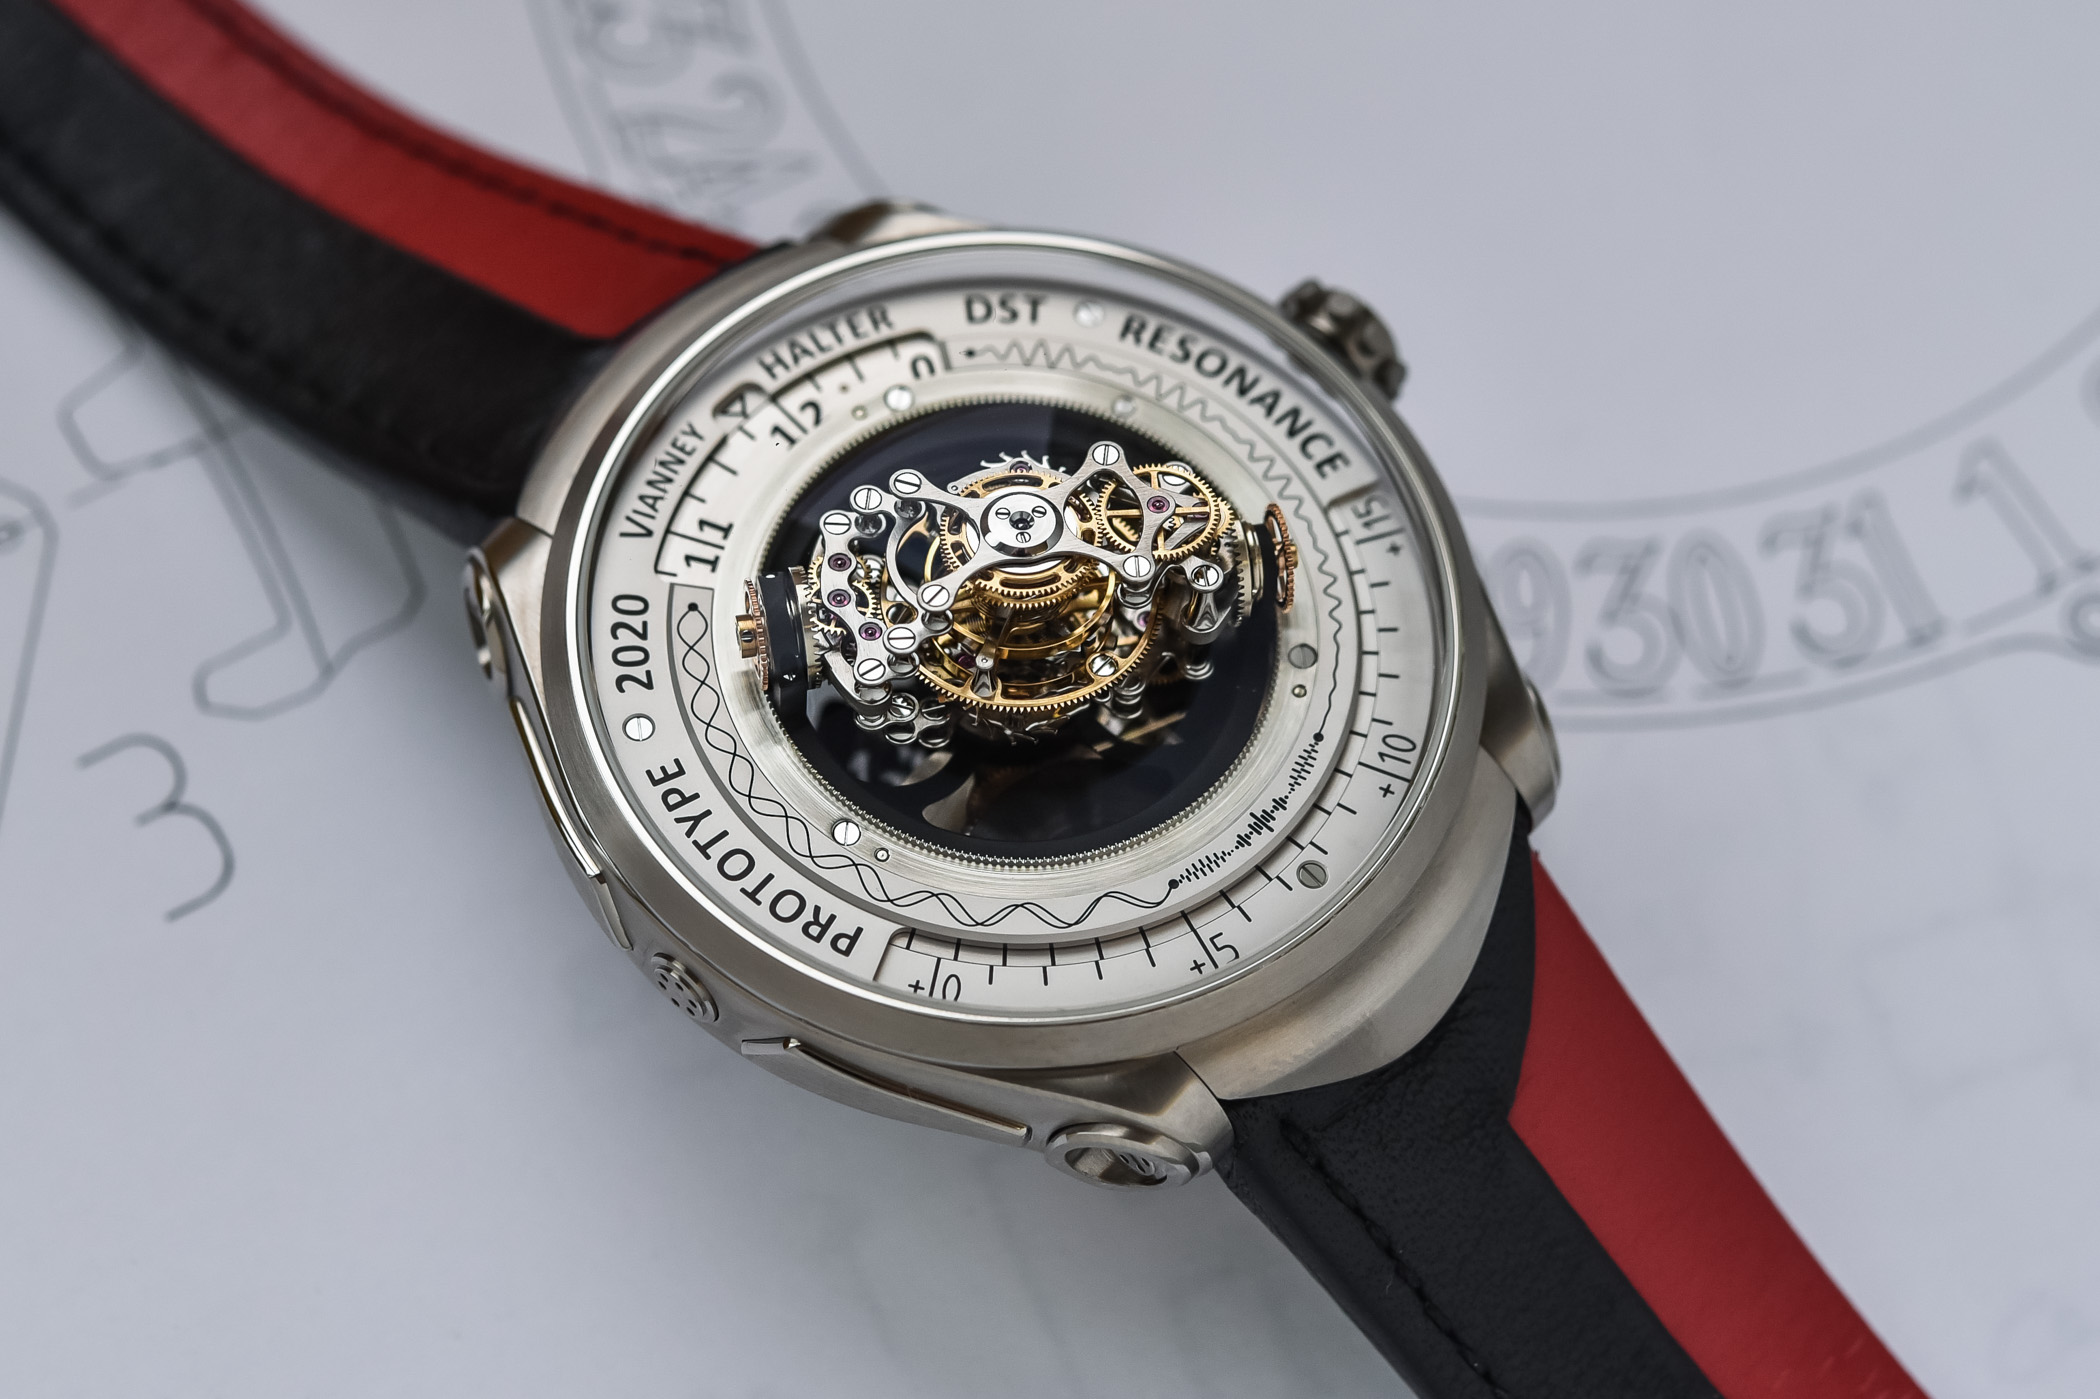 Vianney-Halter-Deep-Space-Resonance-Tourbillon-Prototype-9.jpg